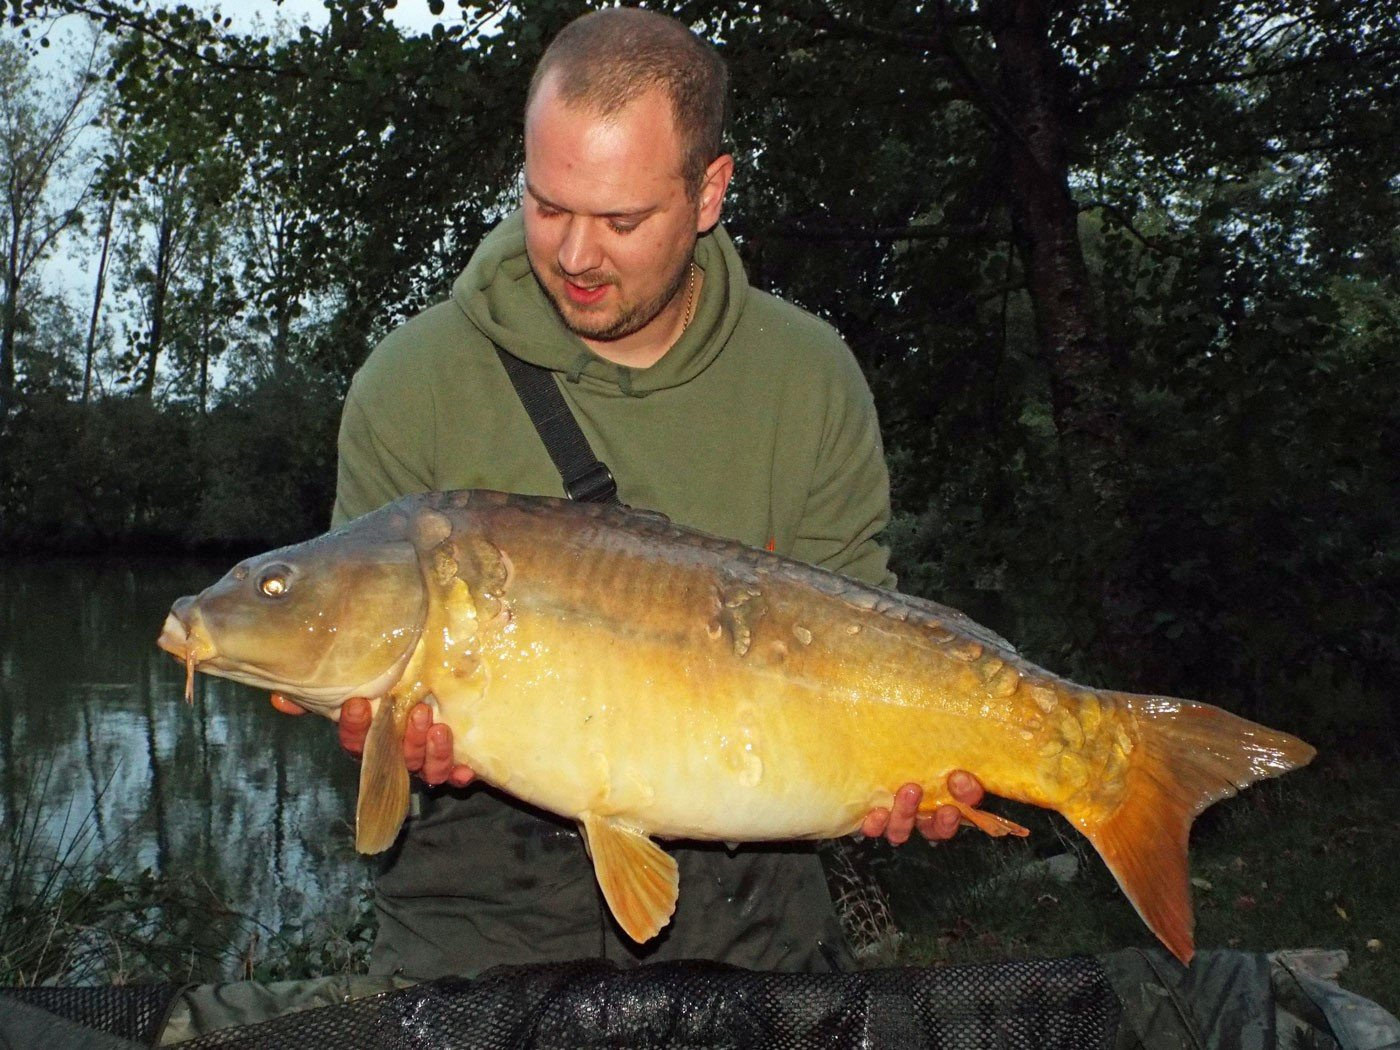 Andy with Petals at 31lbs 8oz a mirror carp